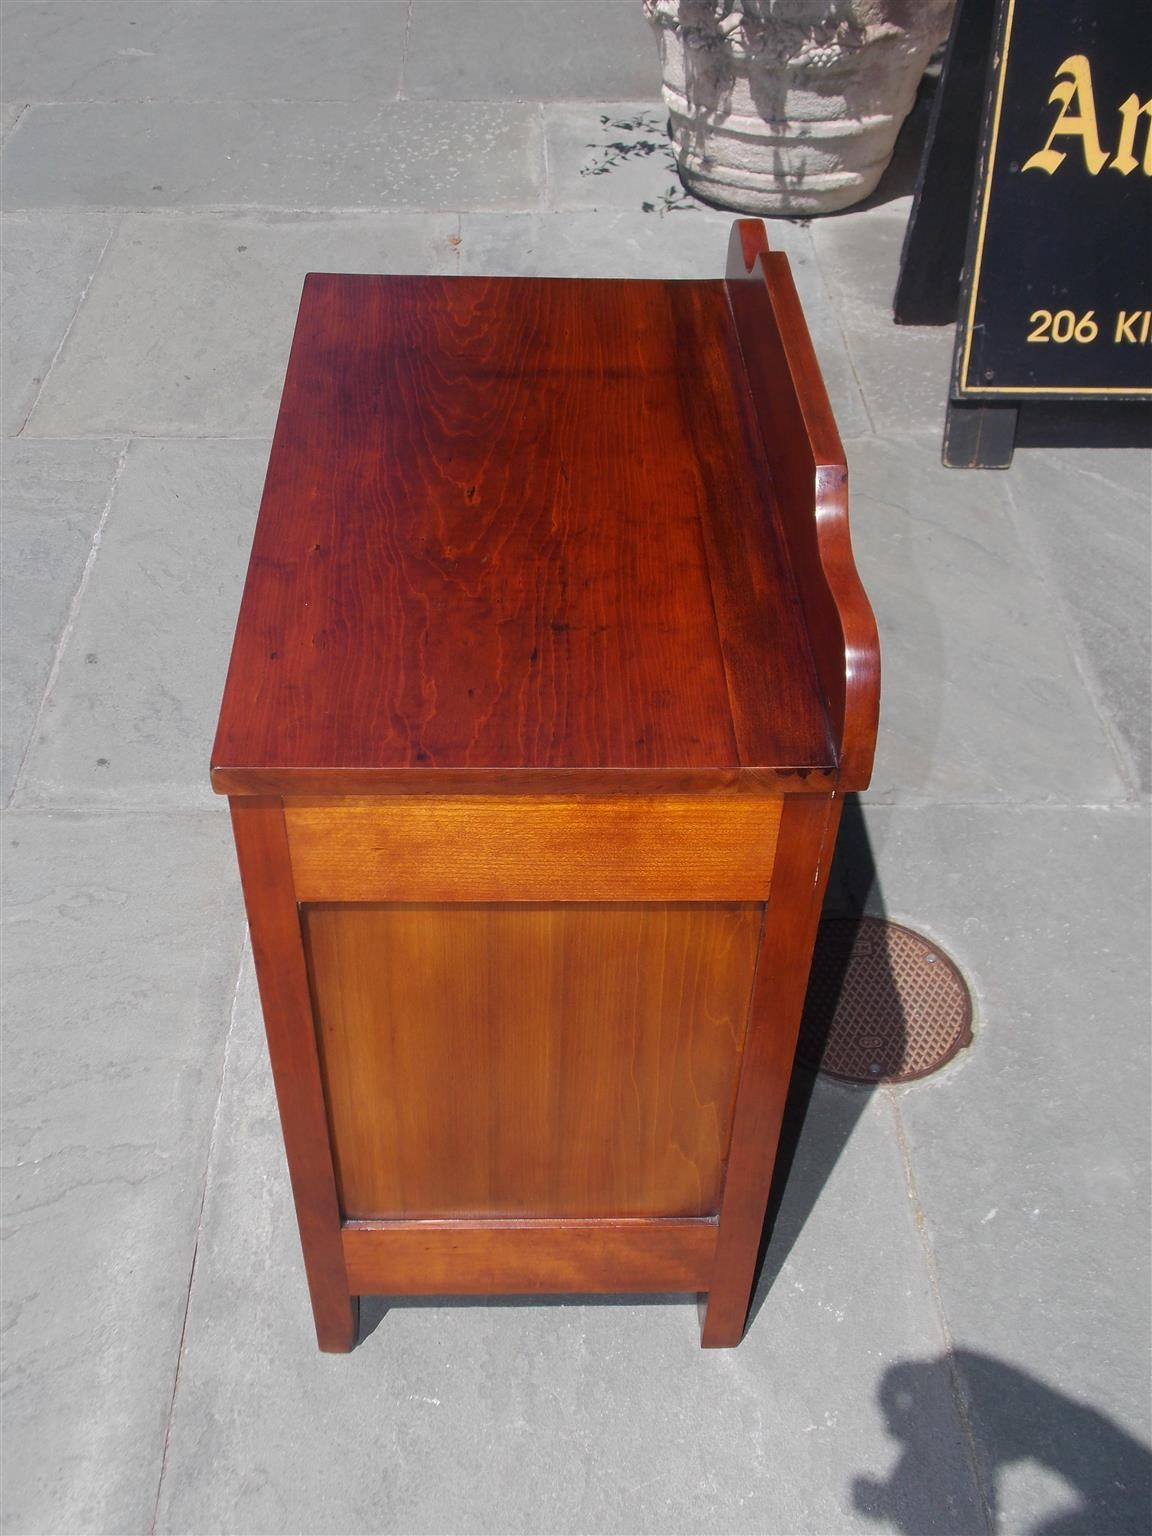 American Cherry Diminutive Chest of Drawers, Circa 1810 For Sale 2